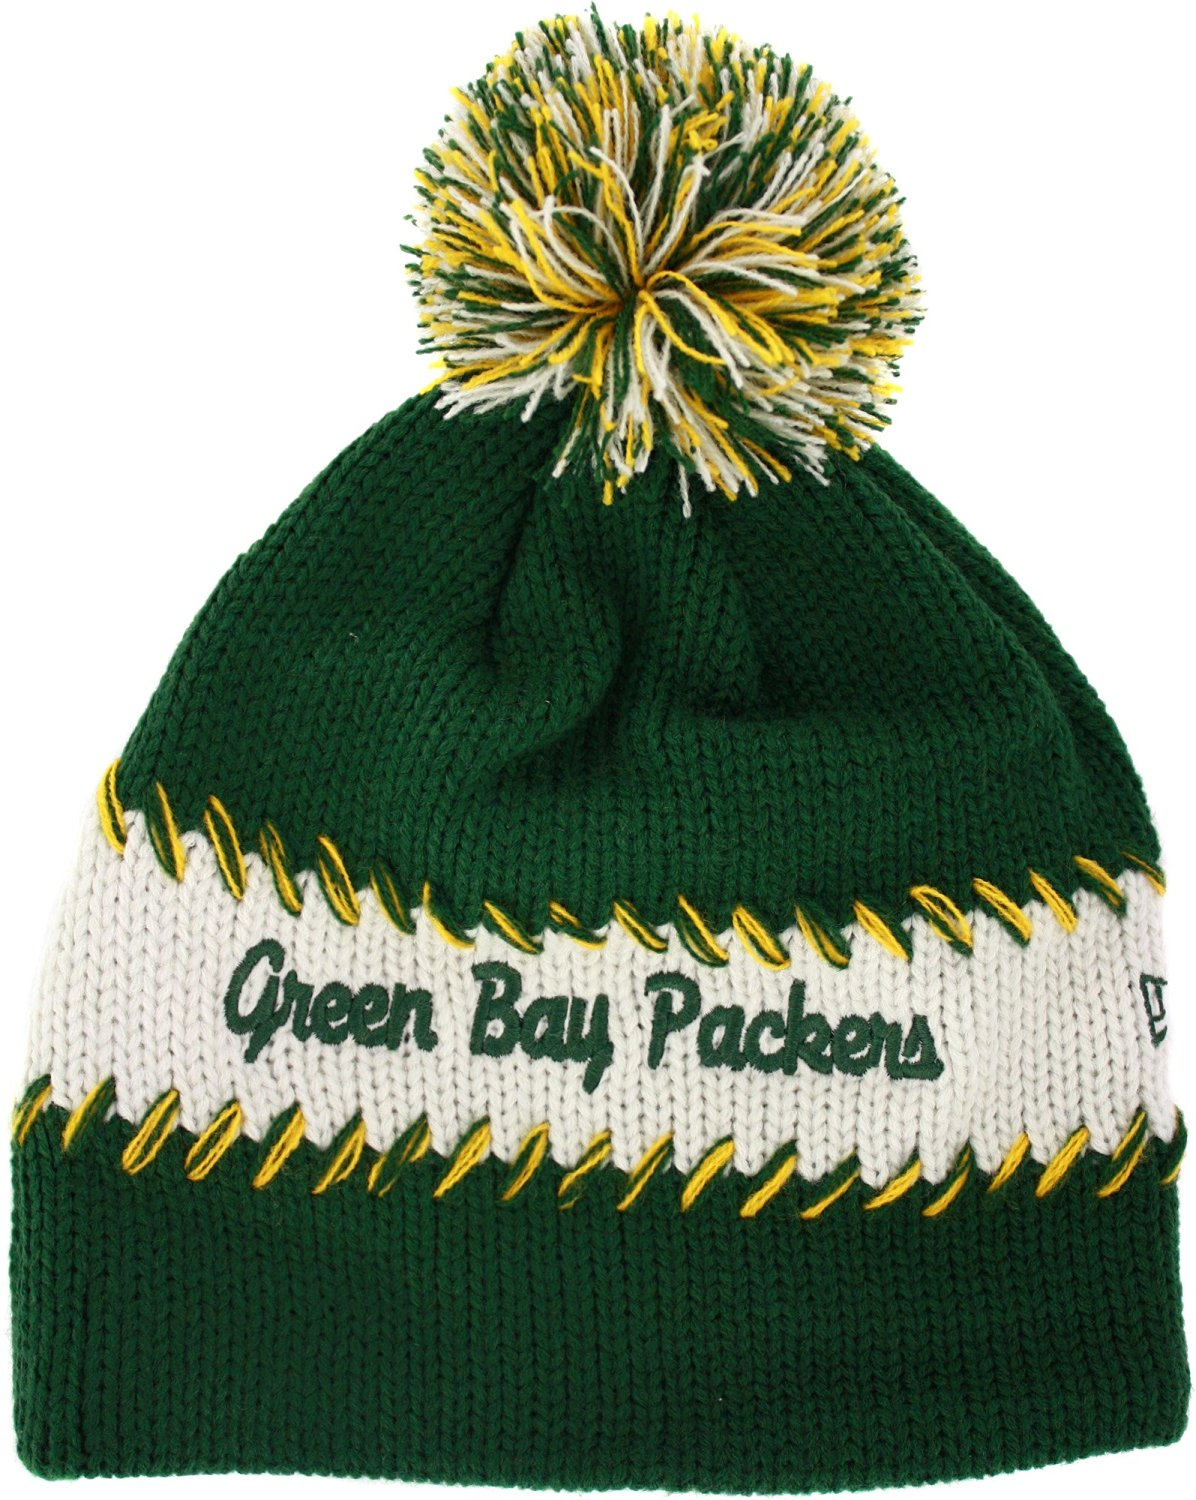 13cd59b7 Cheap Green Knit Cap, find Green Knit Cap deals on line at Alibaba.com